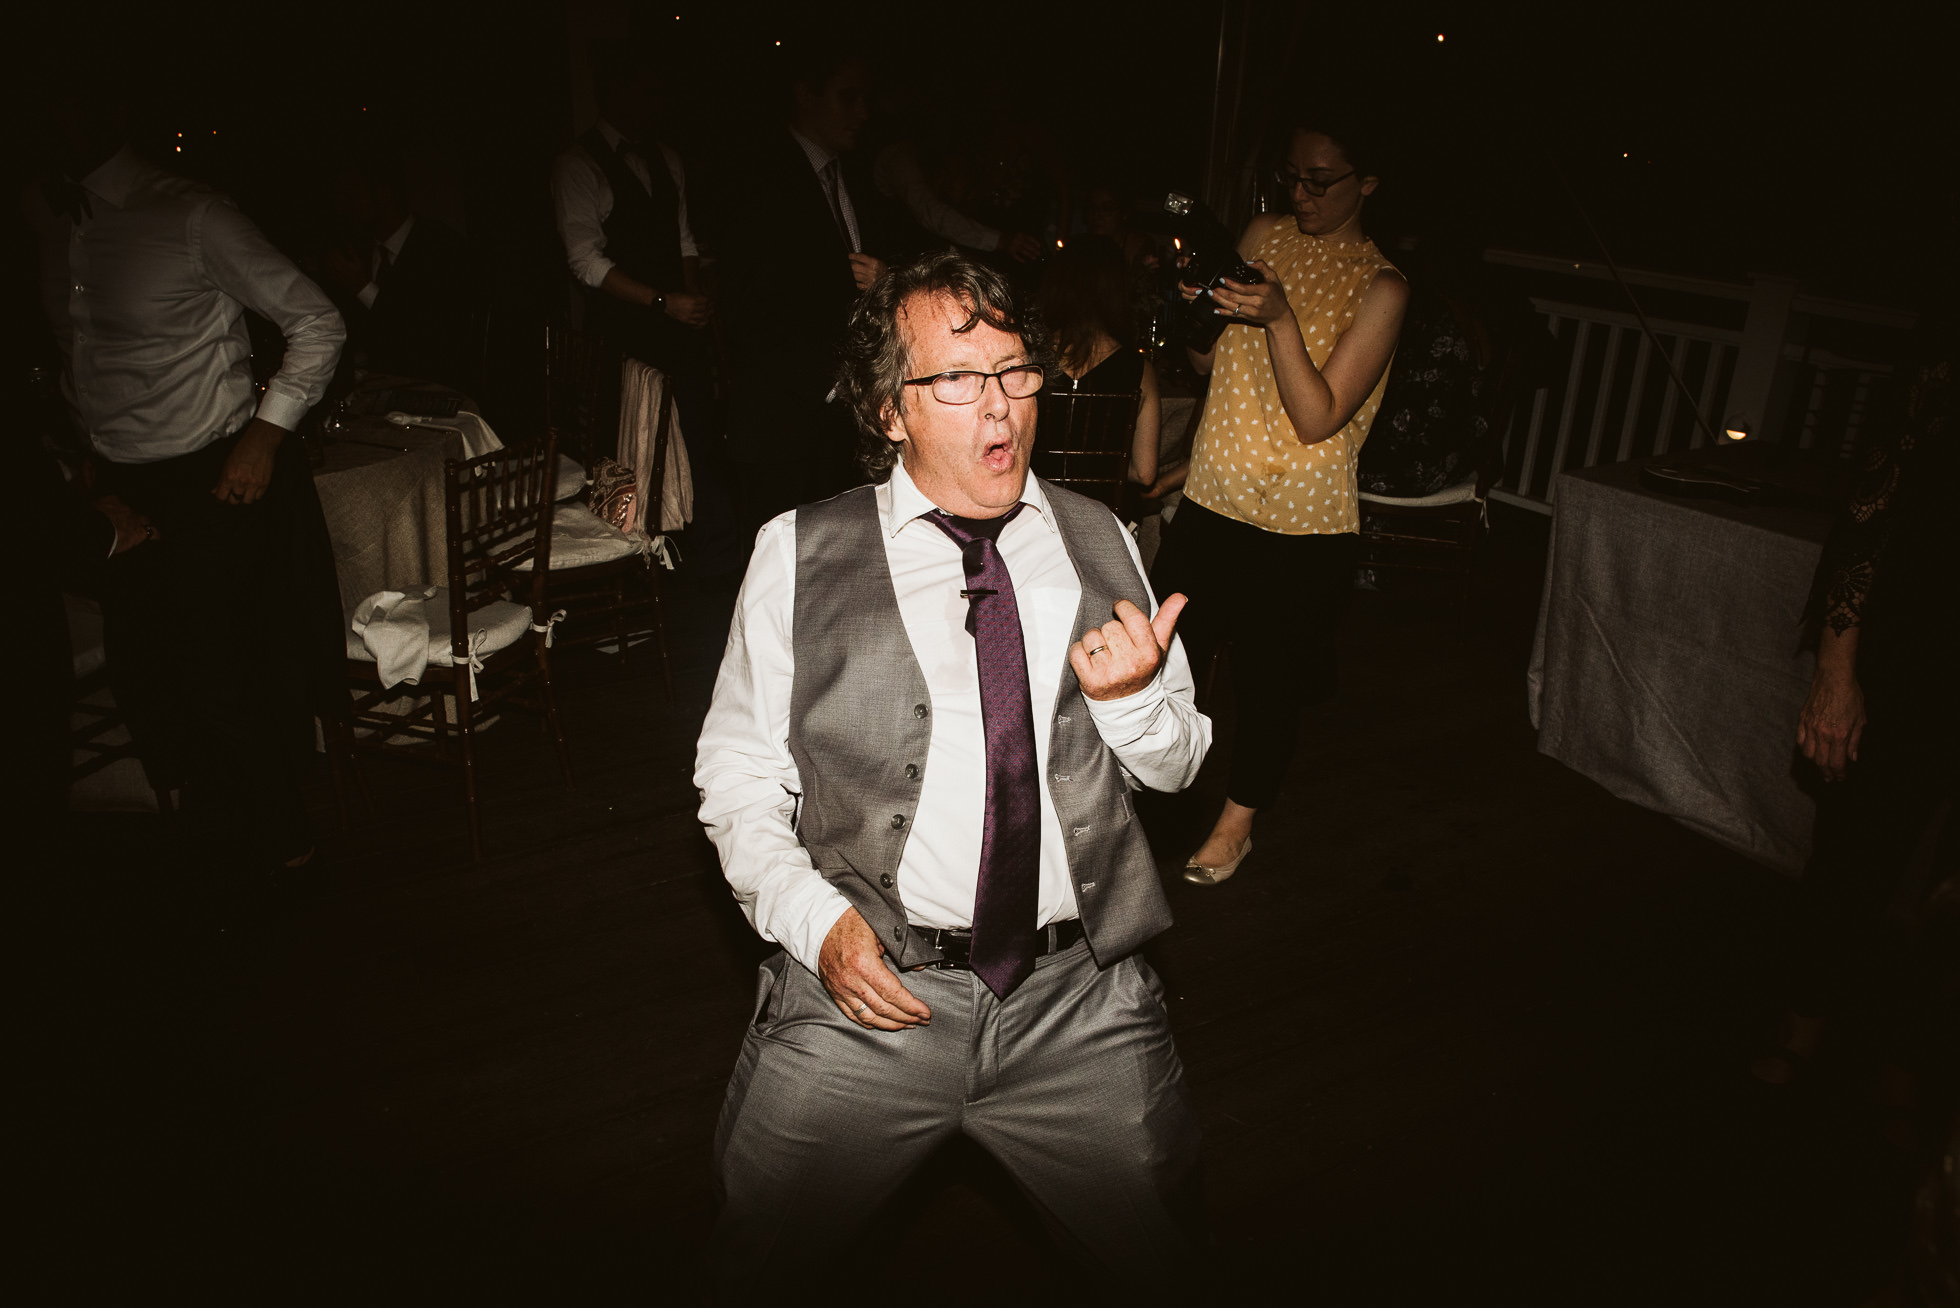 wedding guest playing air guitar